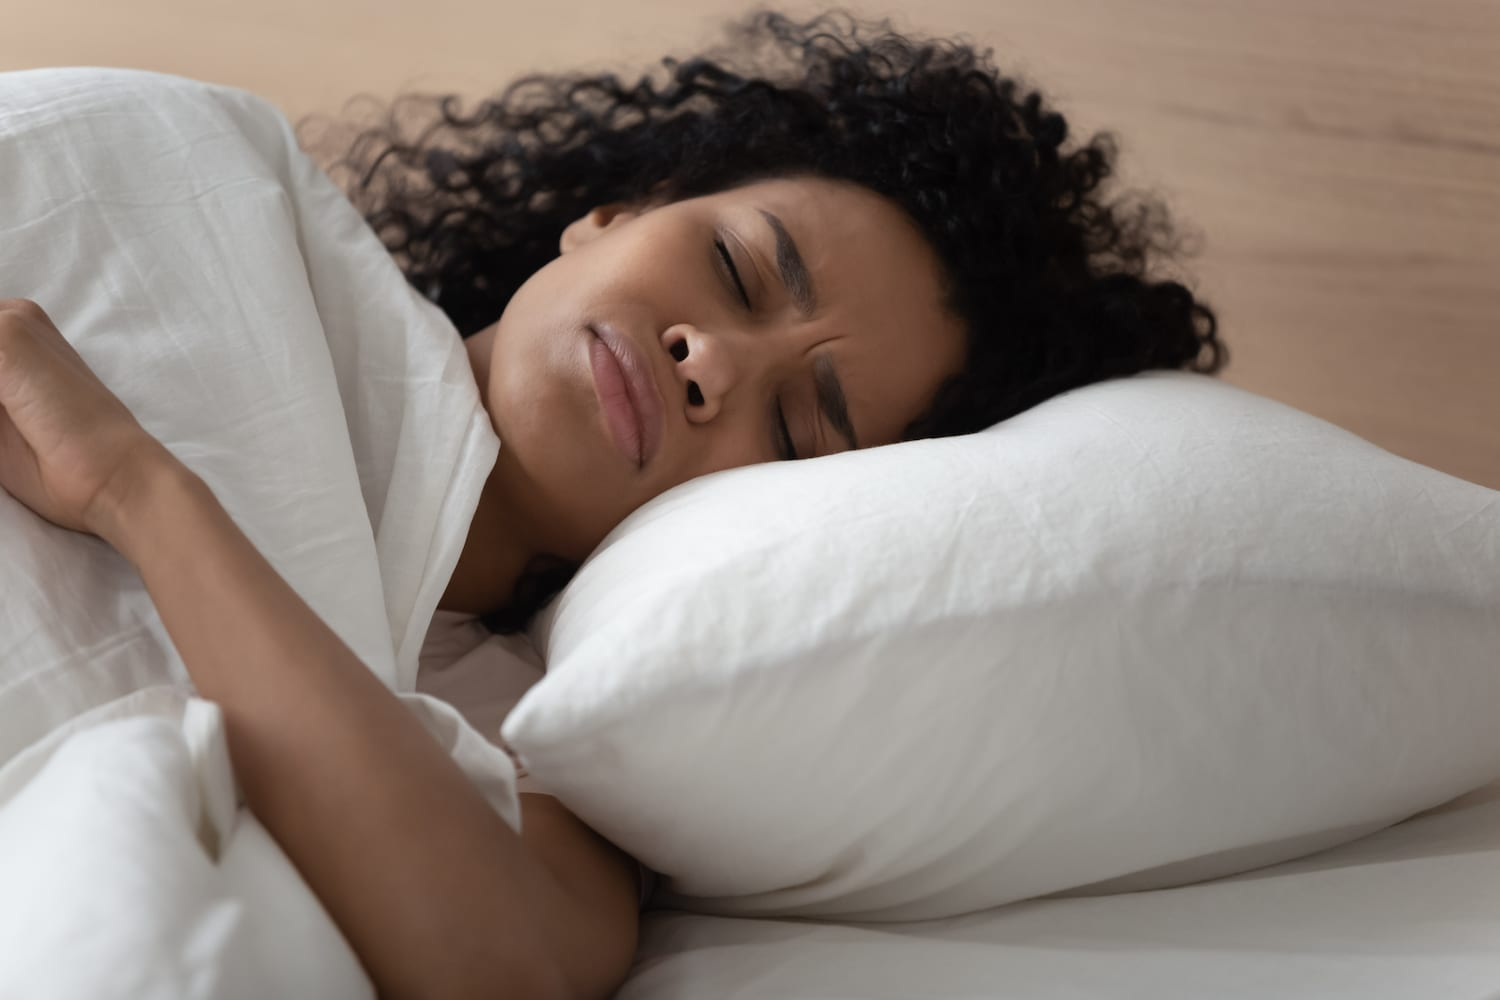 Woman having breathing problems while sleeping